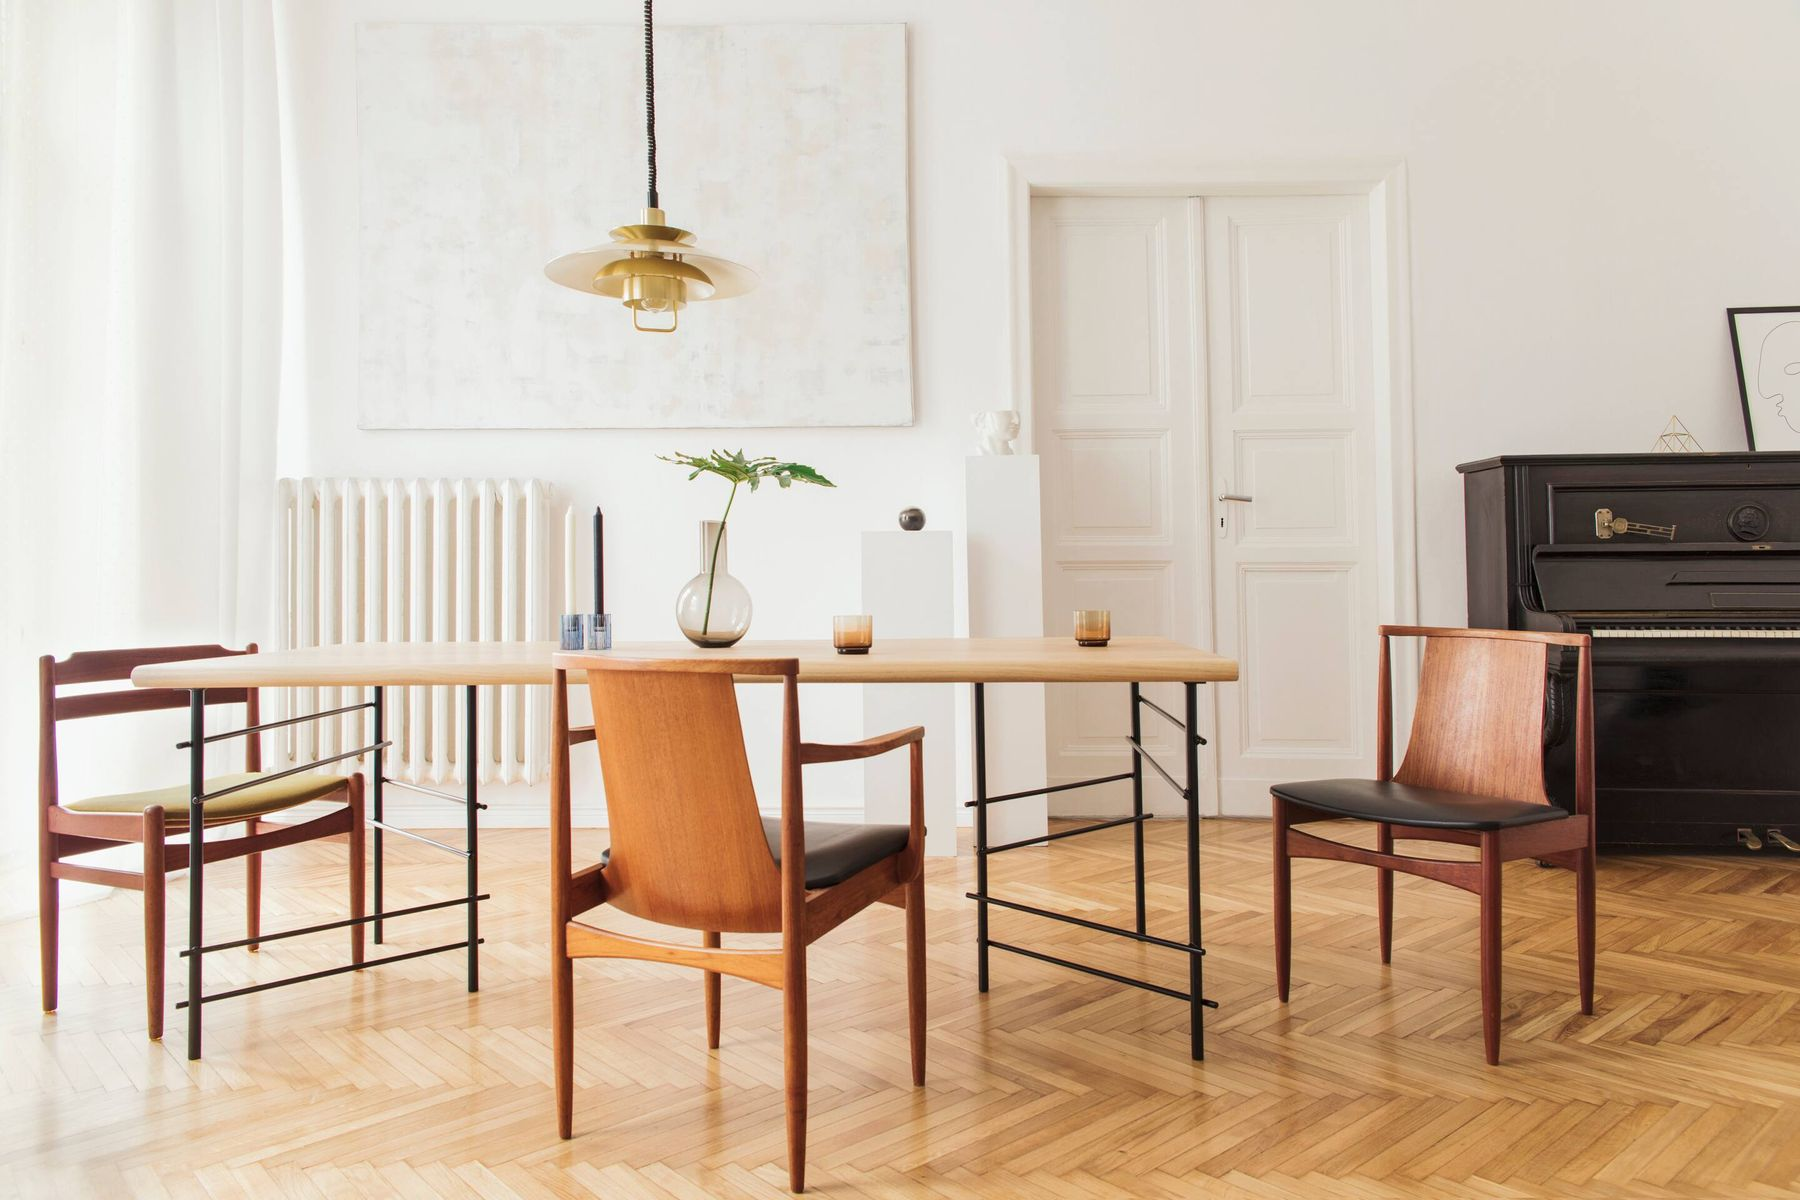 Shiny wooden floor, chairs and table